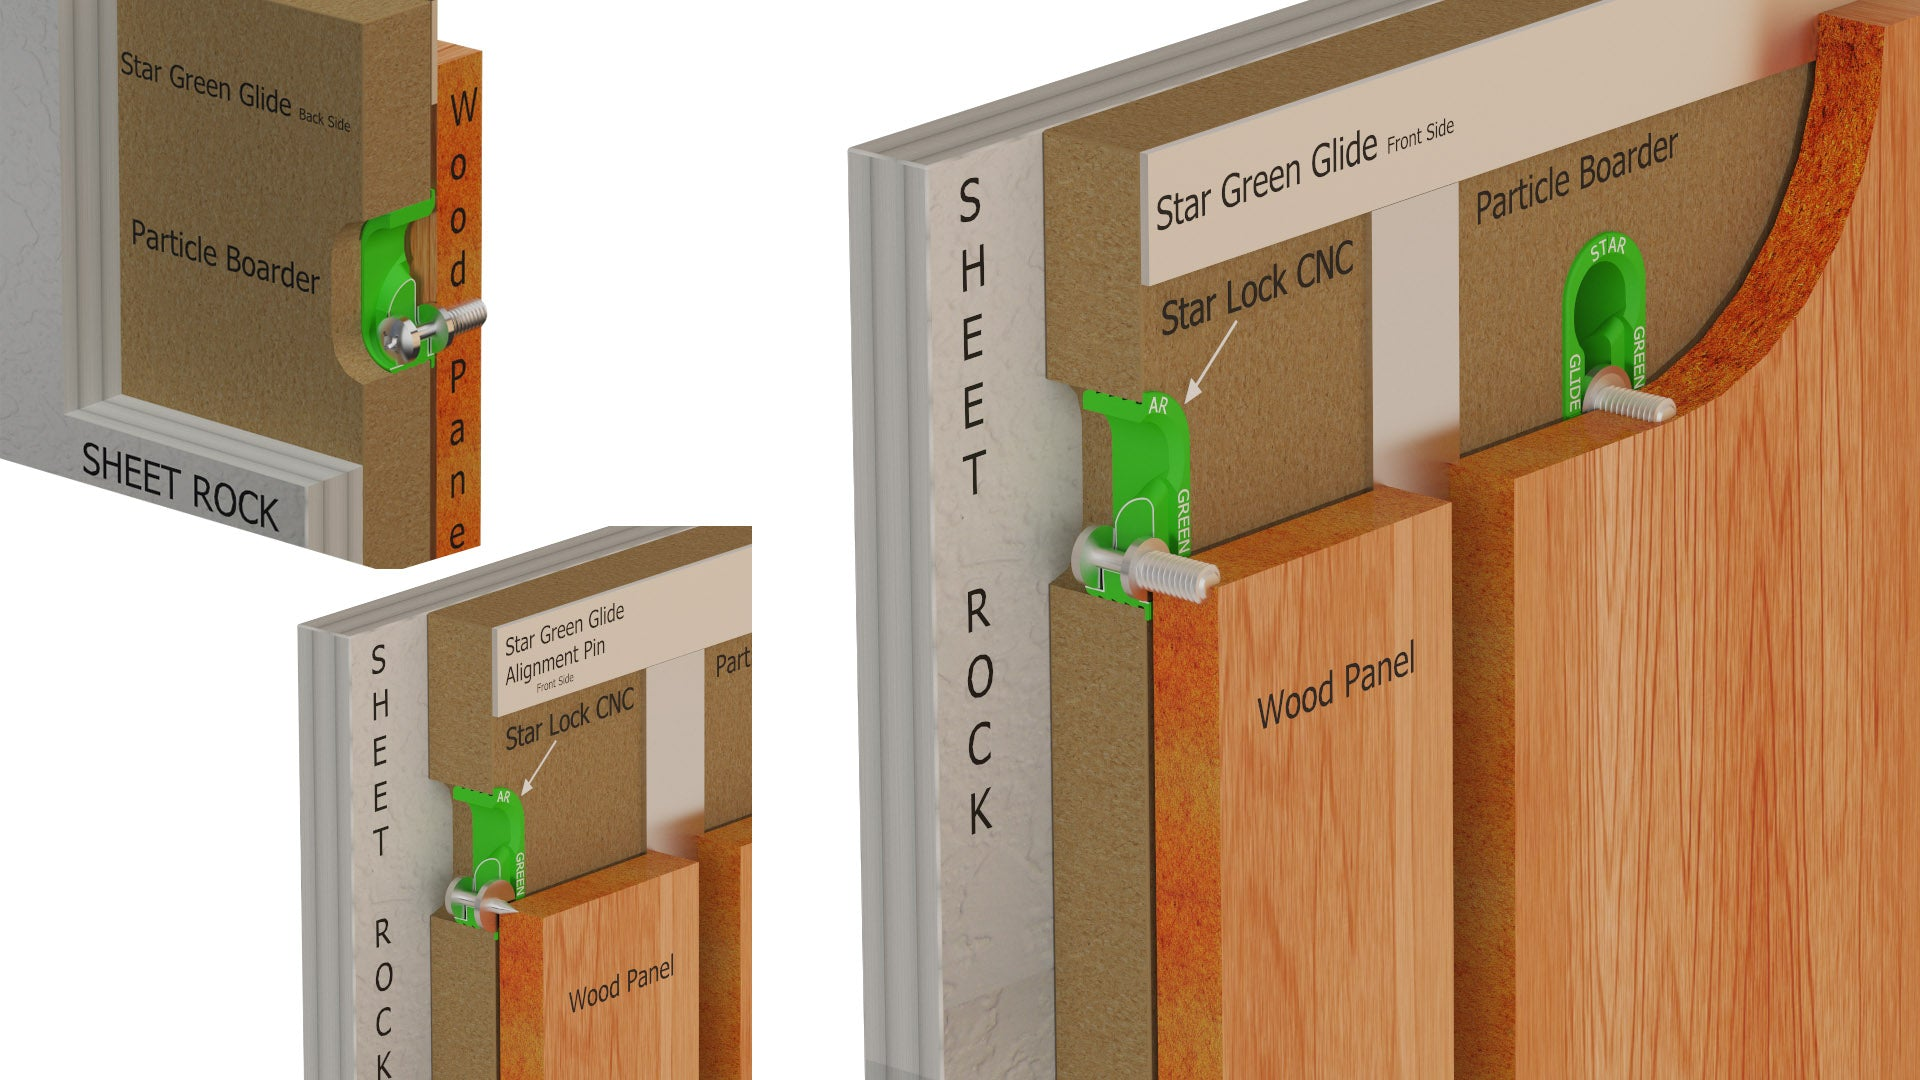 The Star Hanger Green Glide is a compact, high strength piece of concealed hardware that locks like a Z Clip. It can be used to mount wood panels to pre-engineered furring system.  The Green Glide is specifically designed to be machined with CNC router. This saves on site project time and precision.